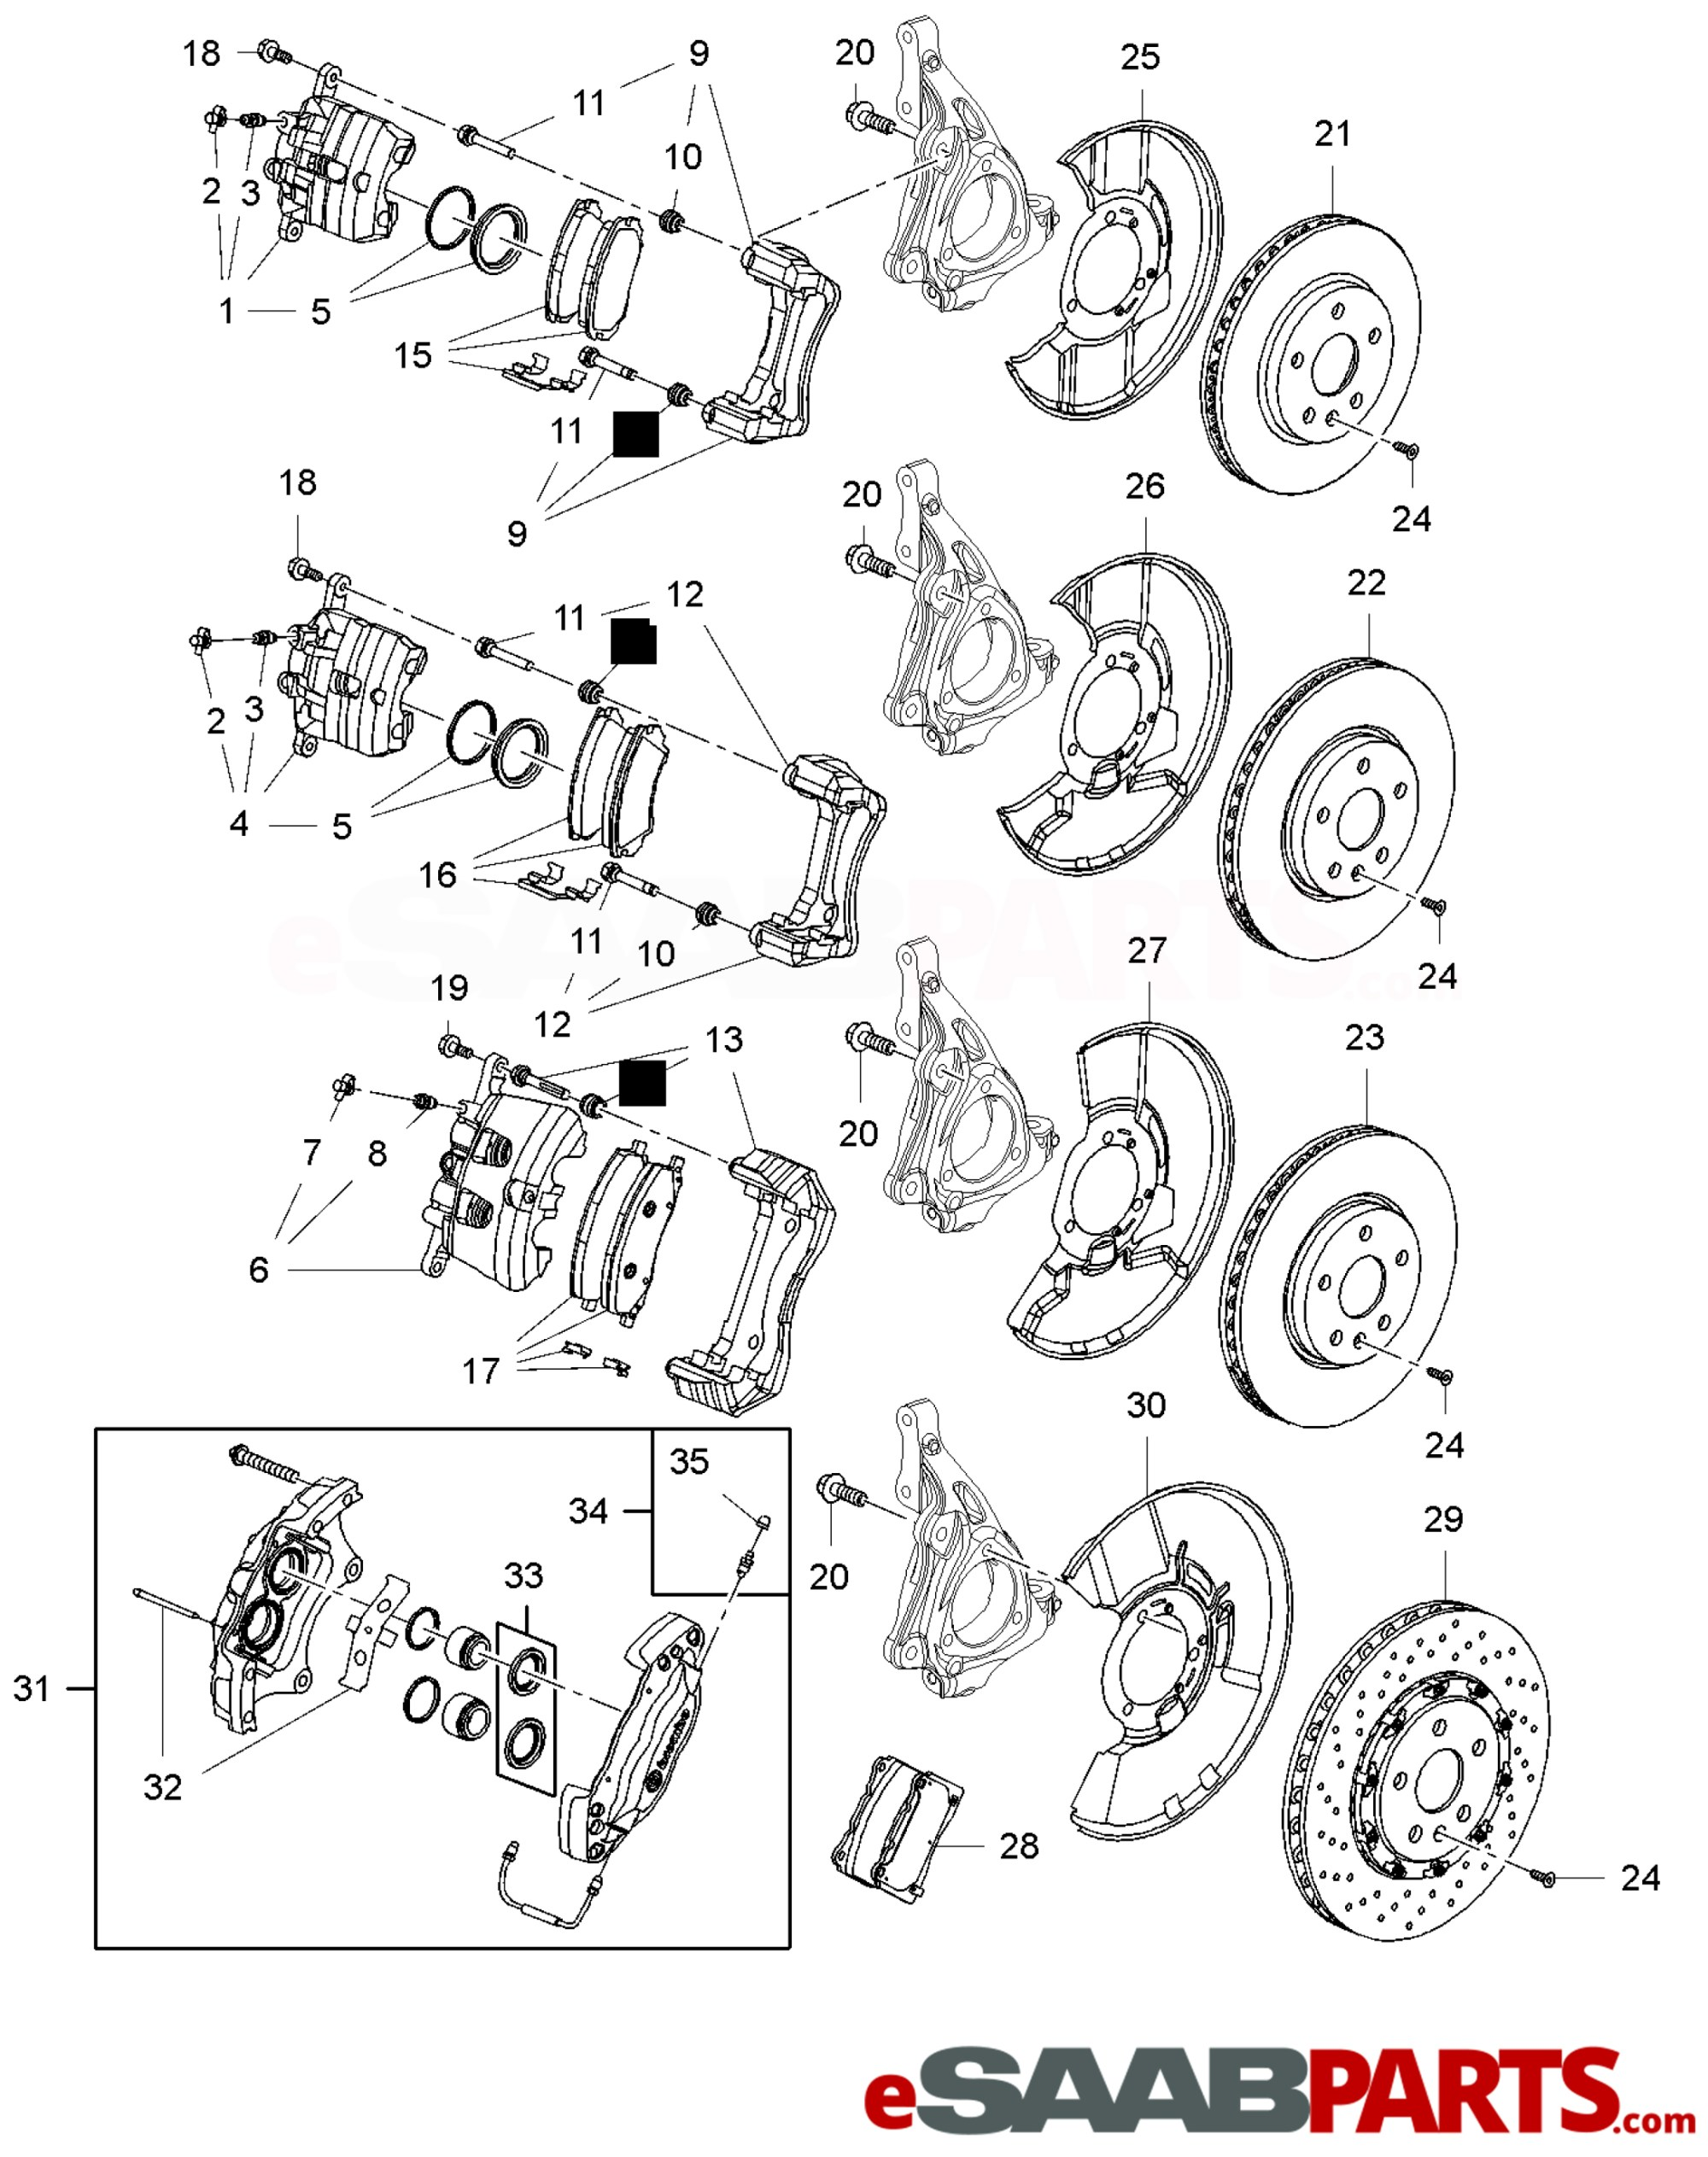 hight resolution of esaabparts com saab 9 5 650 u003e brakes parts u003e brake discesaabparts com saab 9 5 650 u003e brakes parts u003e brake disc calipers u0026 pads